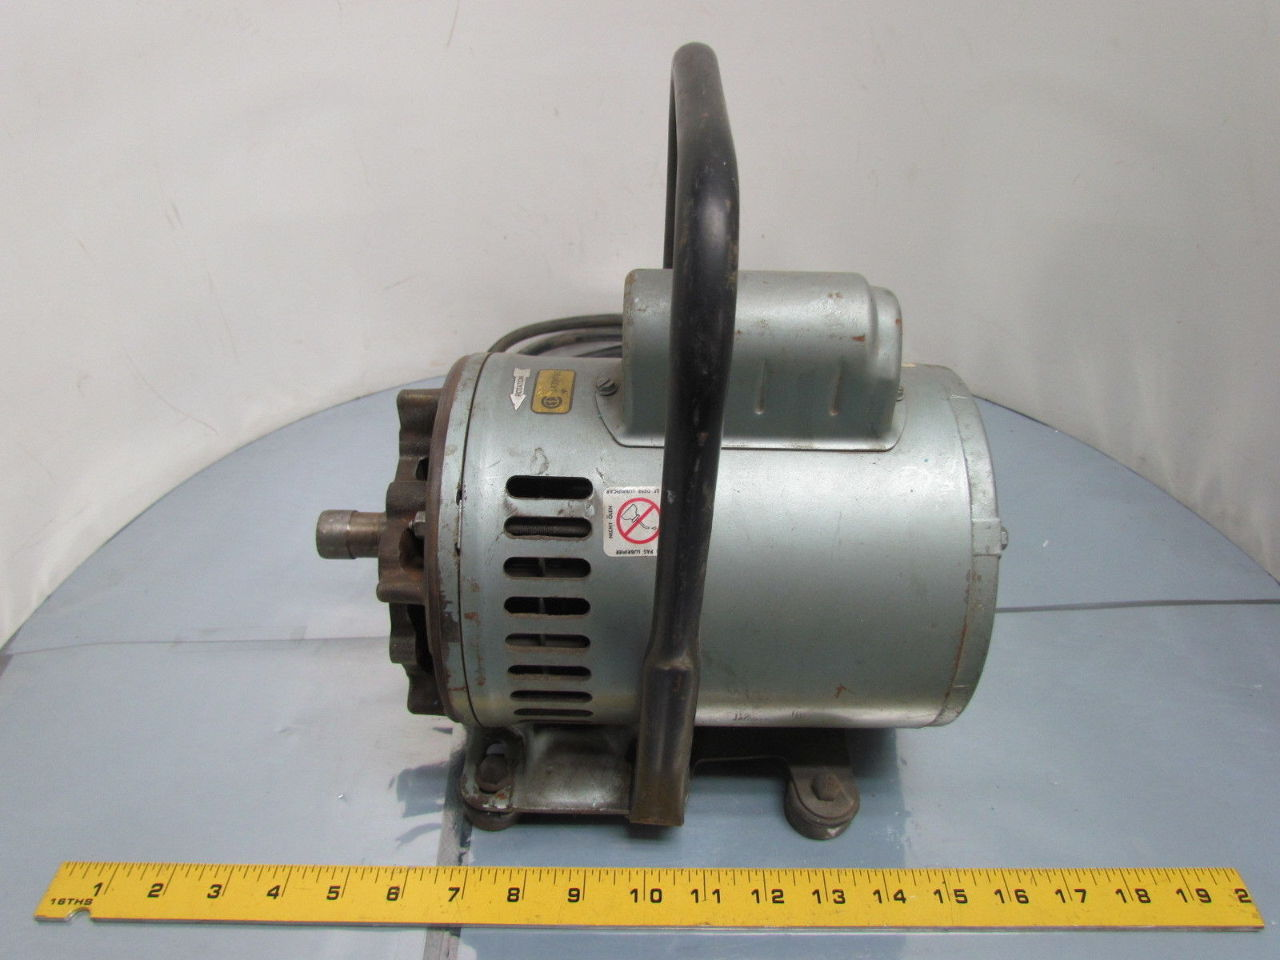 44332 doerr electric lr39793 1 2hp 1ph 115 208 230 j56z vacuum pump motor 7 8 shaft dayton motor rev fwd wiring the home machinist! readingrat net  at nearapp.co